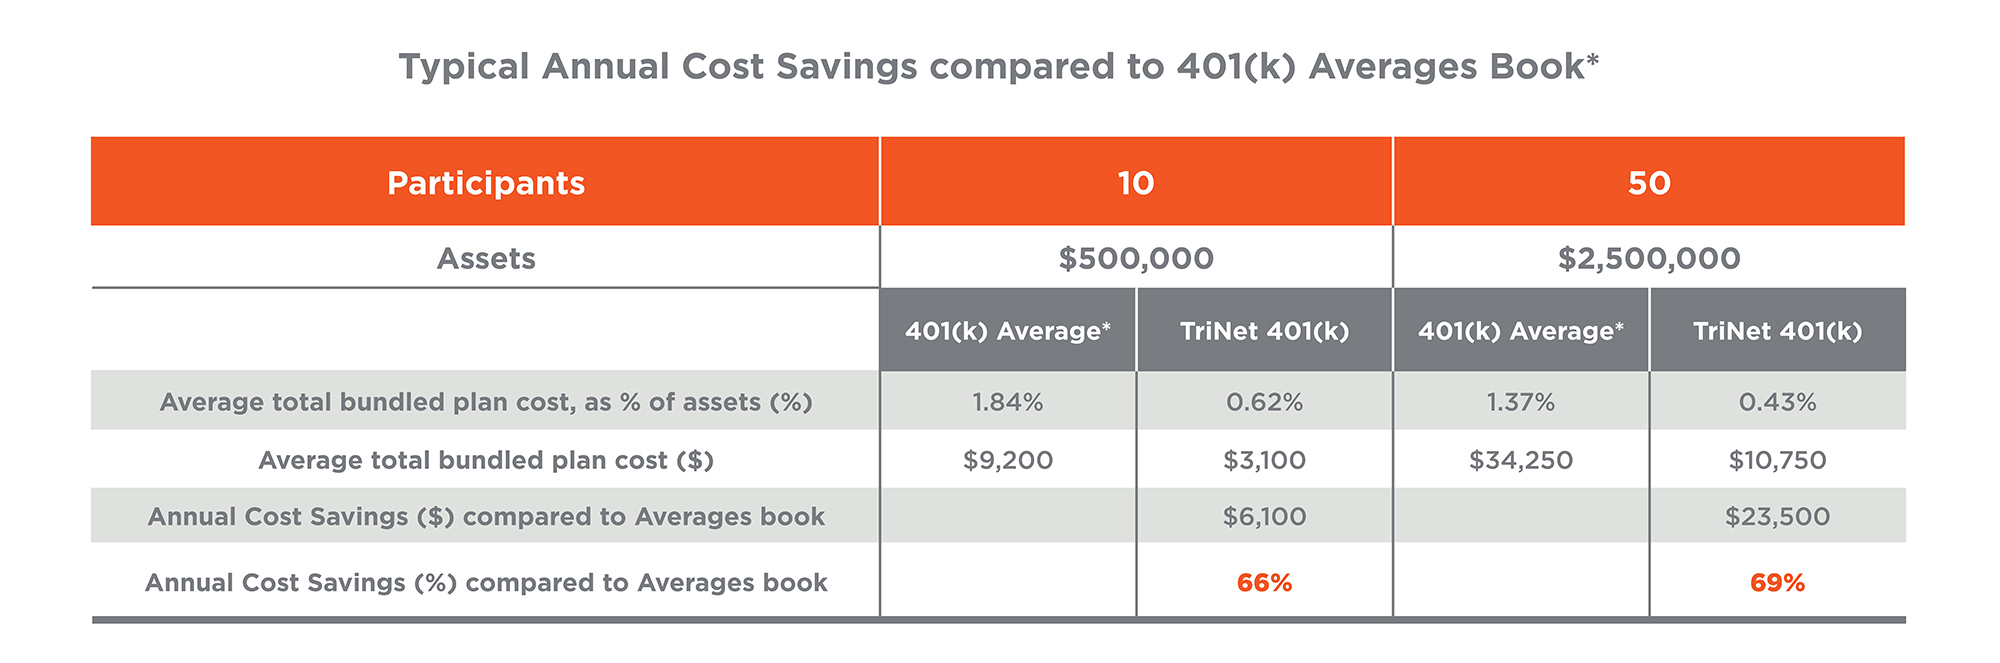 Average Annual Cost Savings compared to 401k Averages Book